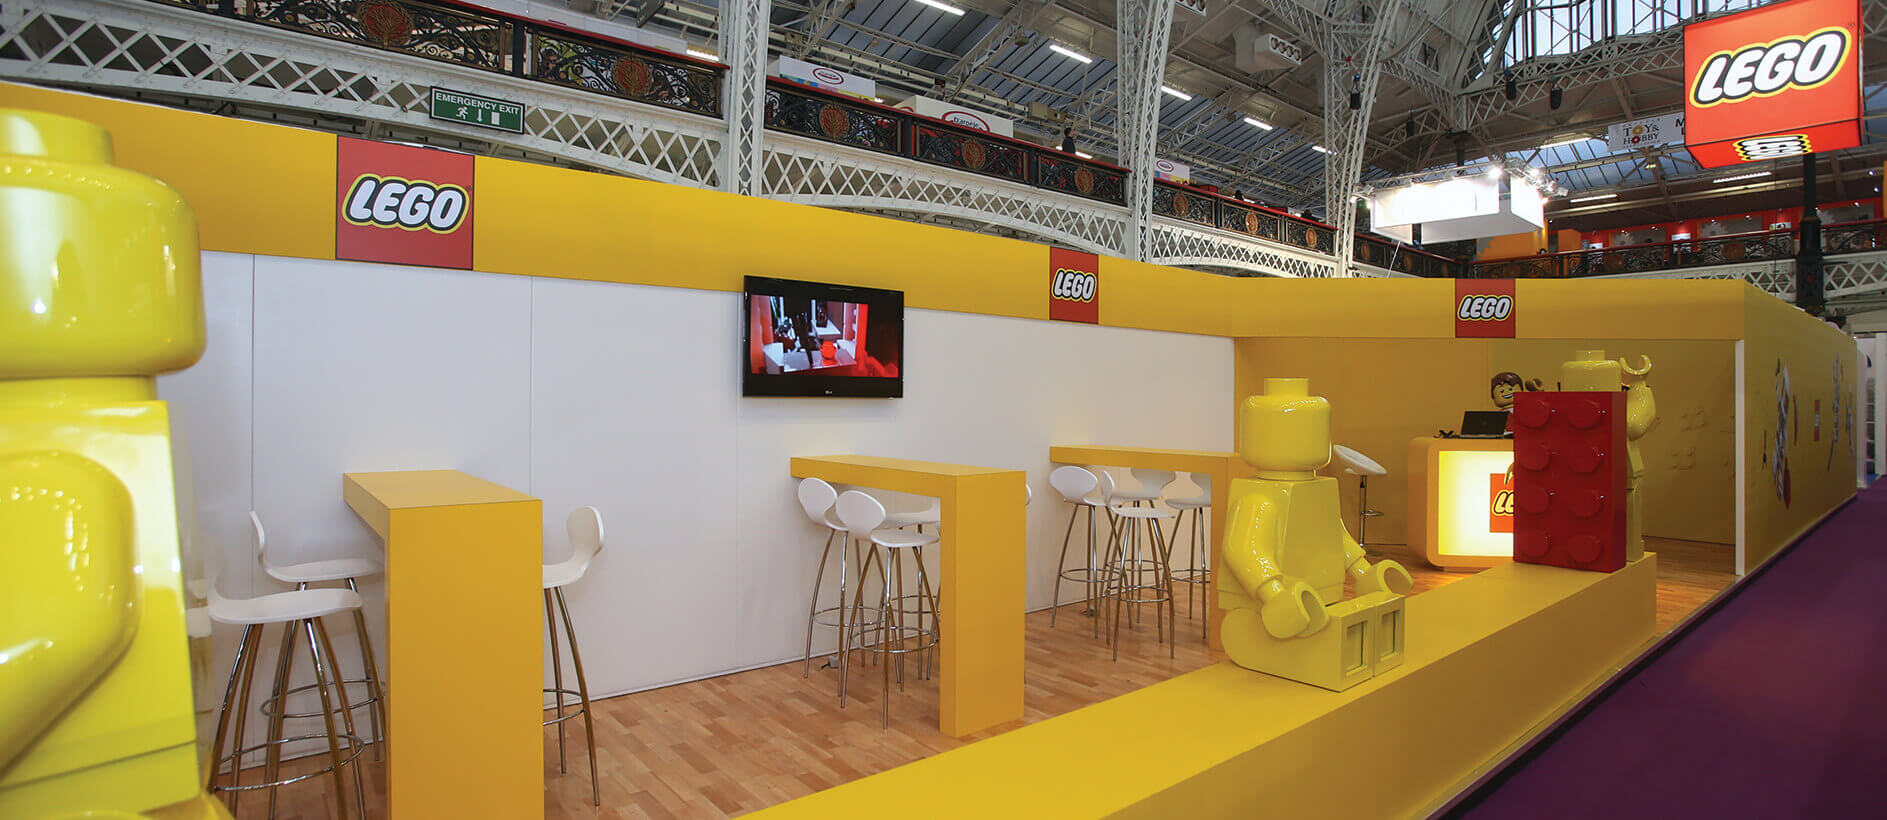 Exhibition Stand Design Shell Scheme : Lego stand exhibition by exhibit sixty